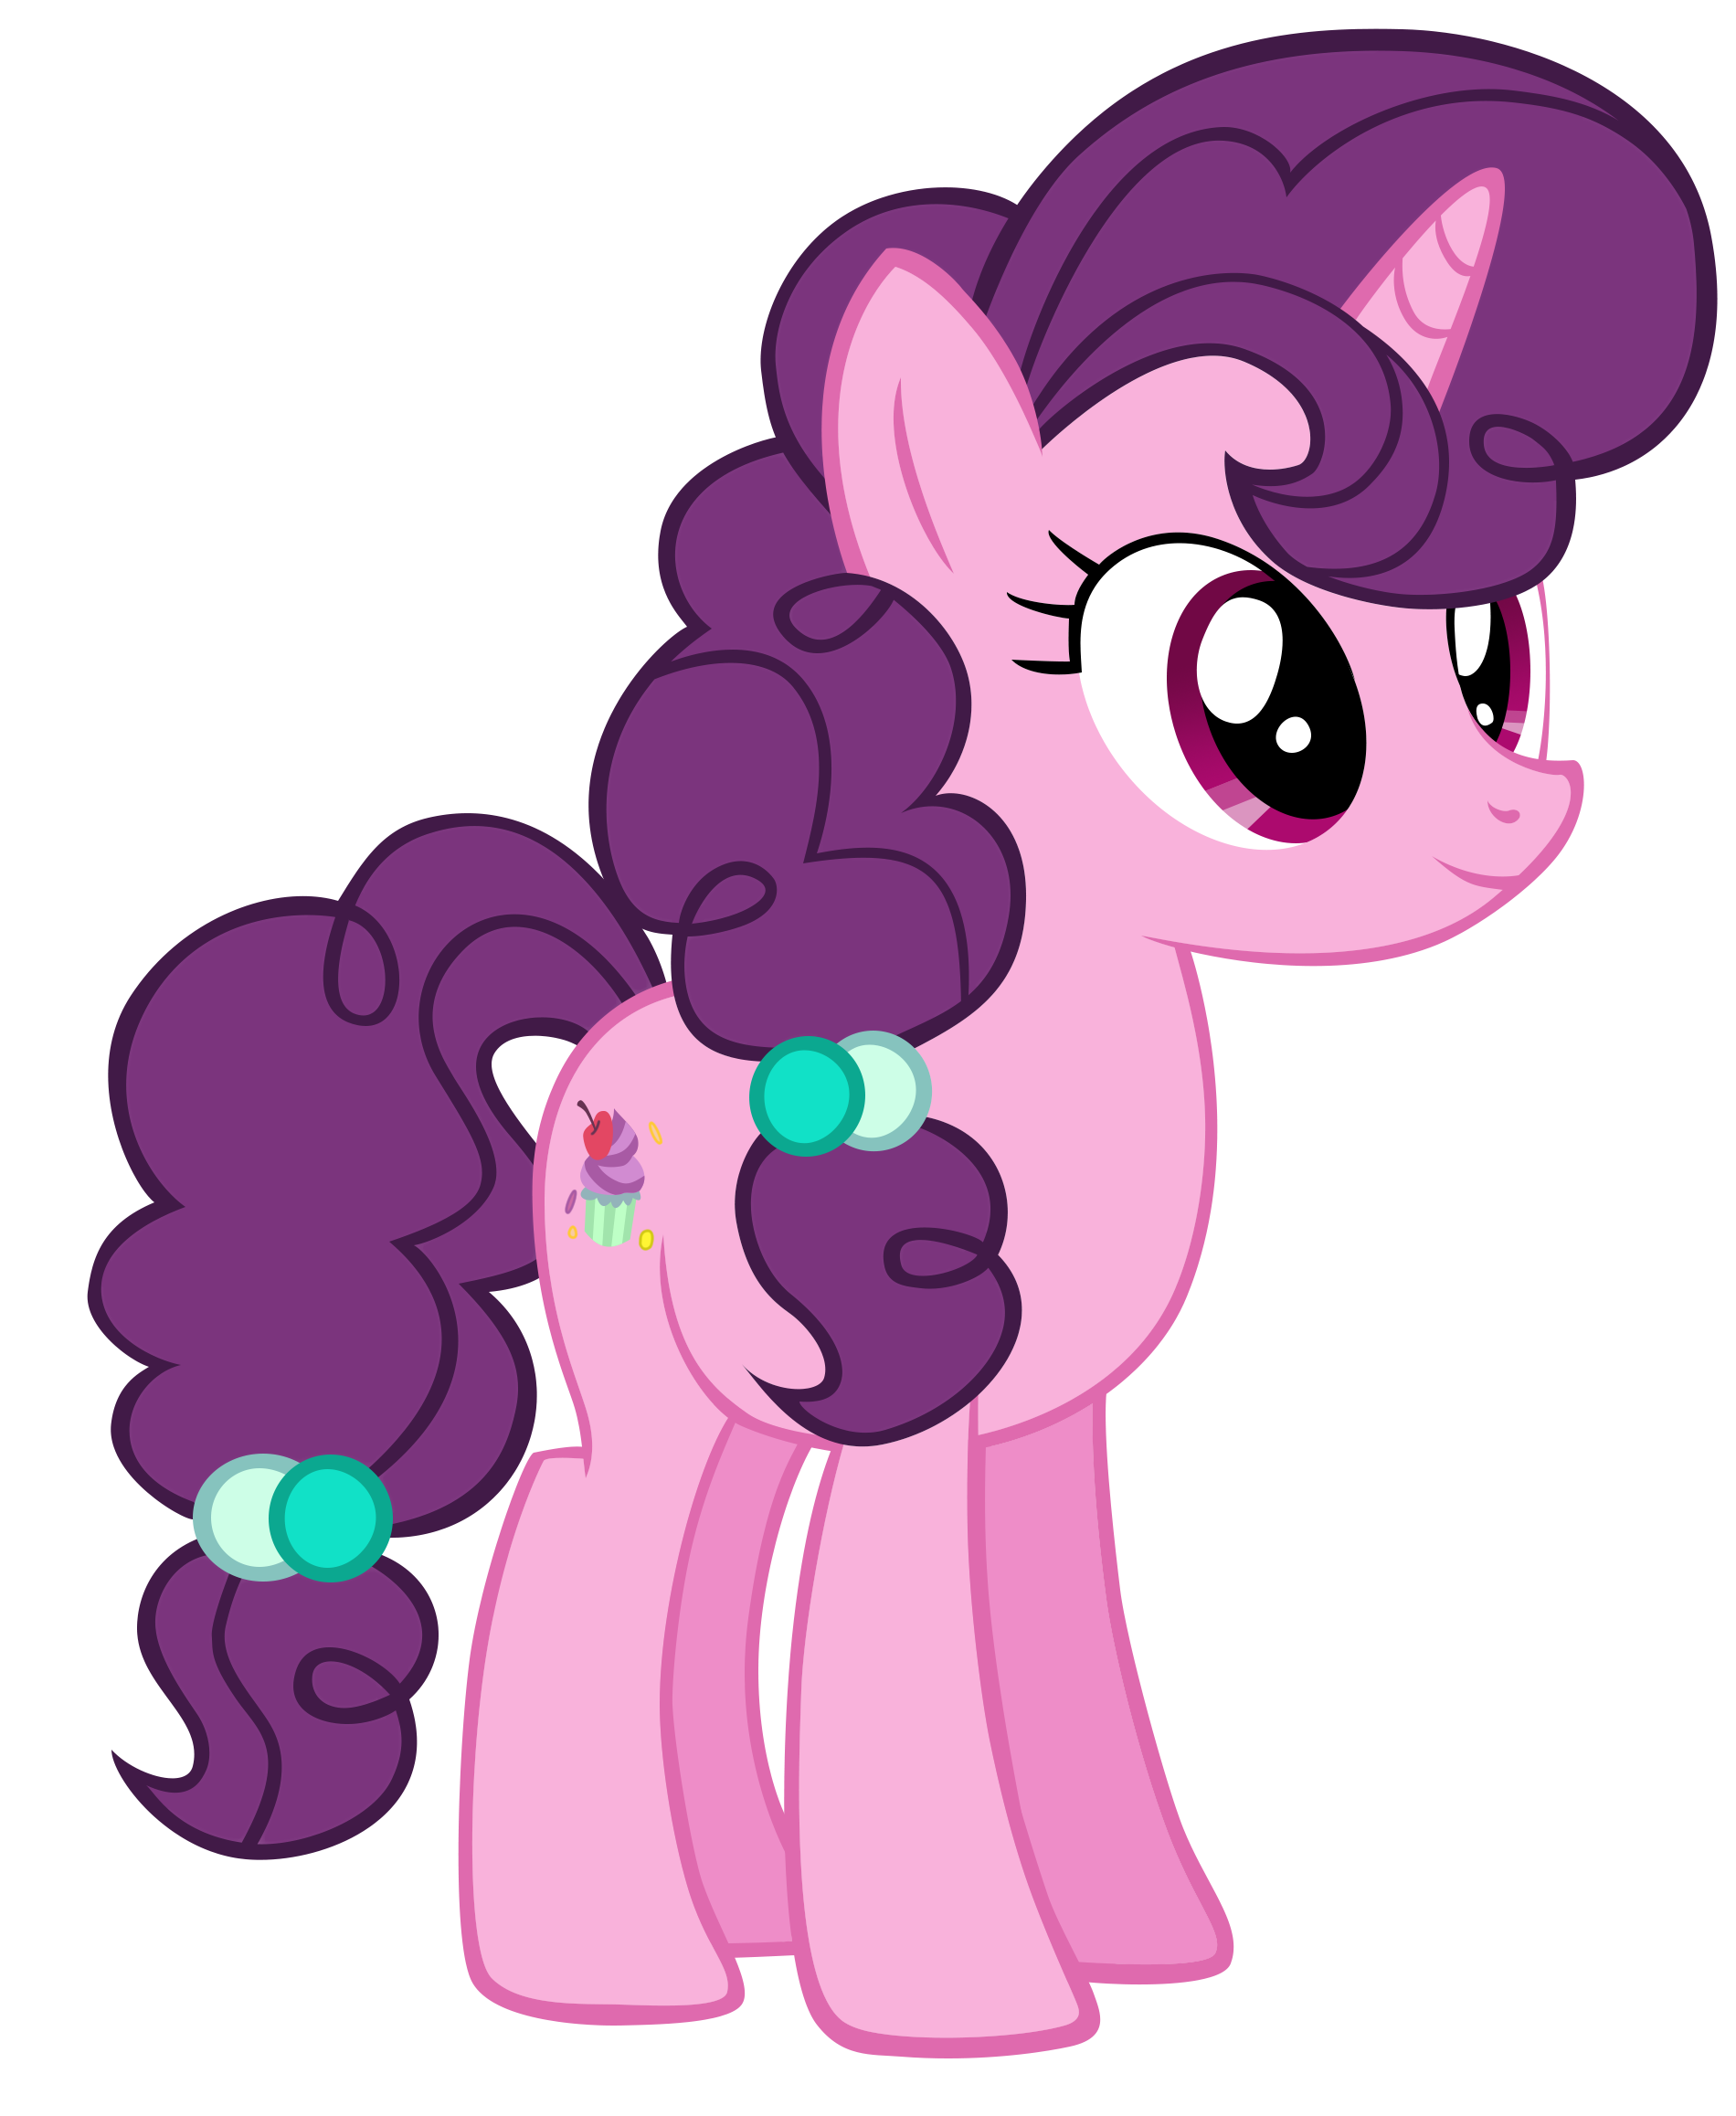 sugar_belle_by_drlonepony-d8oek4l.png